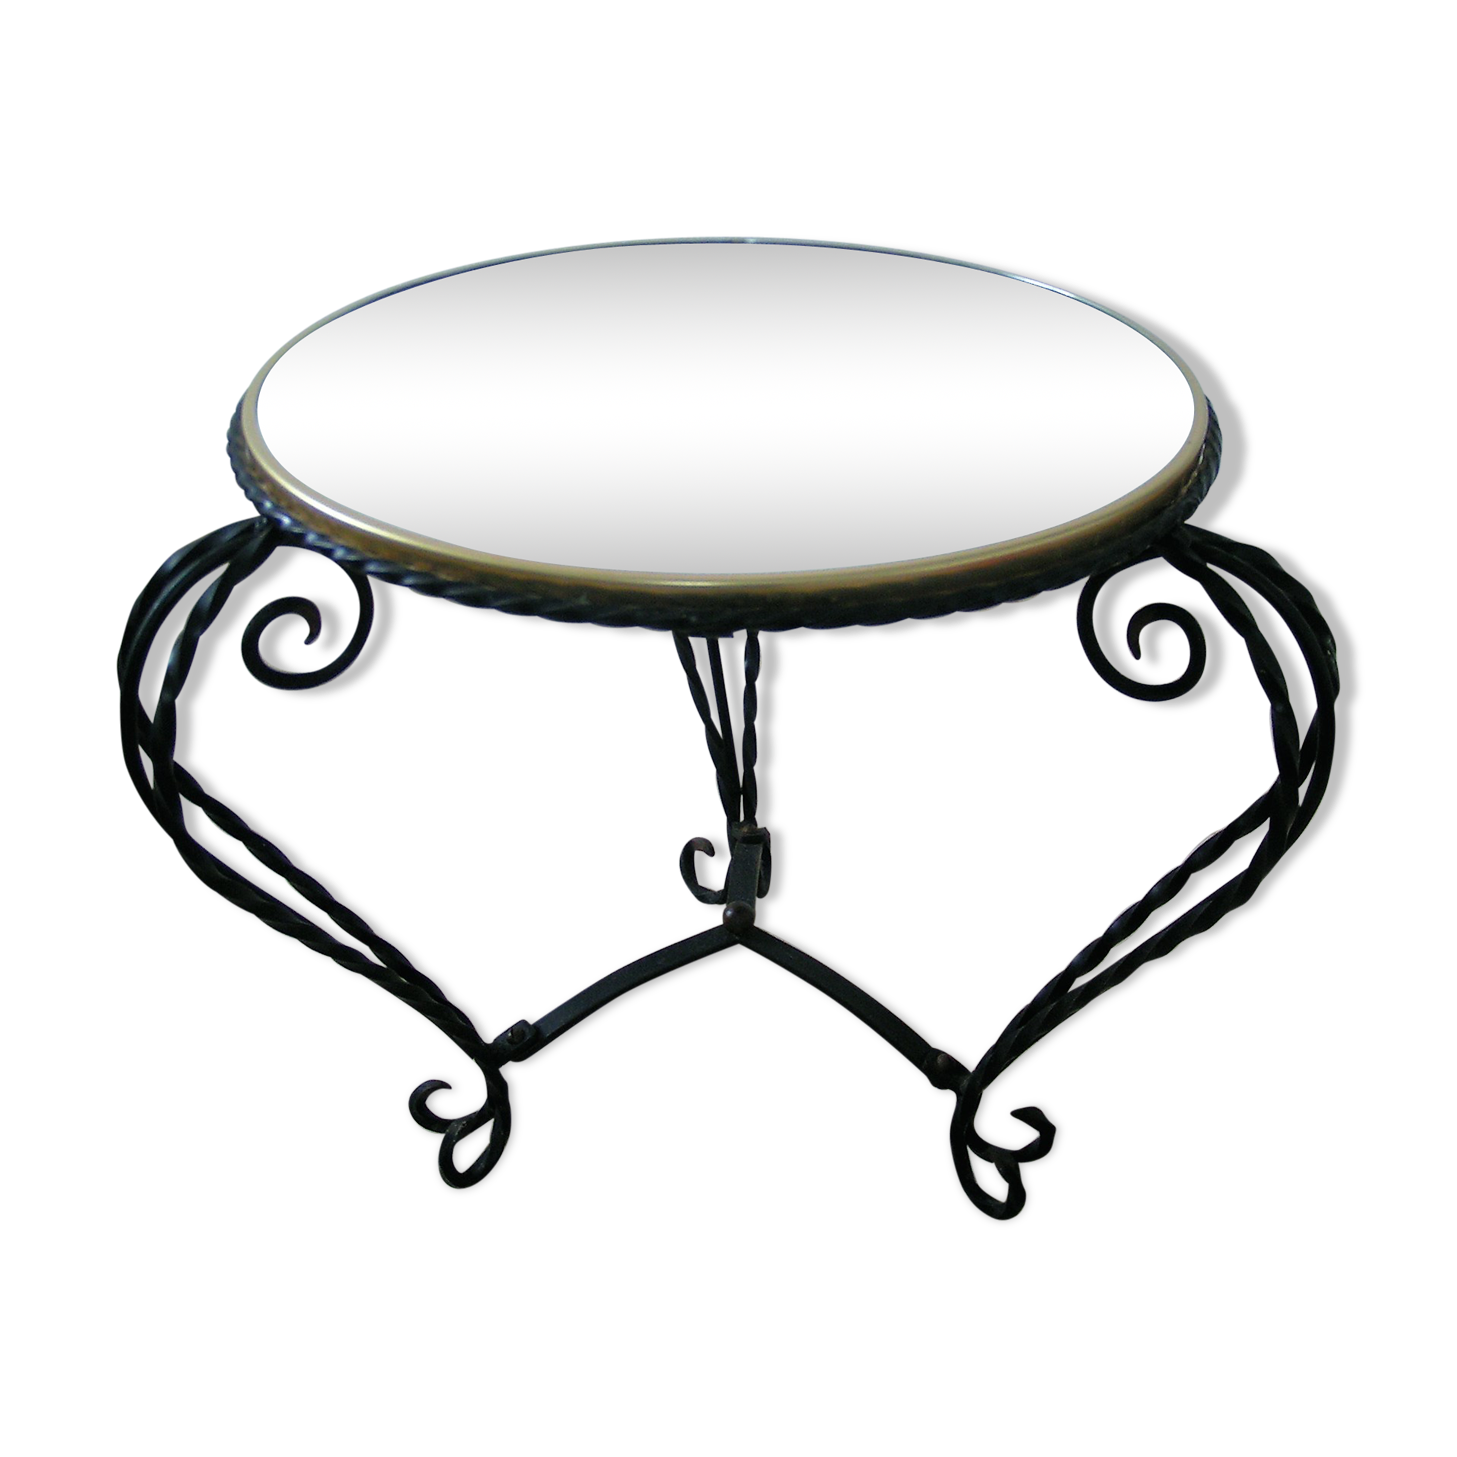 table basse ronde originale fabulous table basse faire appel table basse ronde blanche et verre. Black Bedroom Furniture Sets. Home Design Ideas